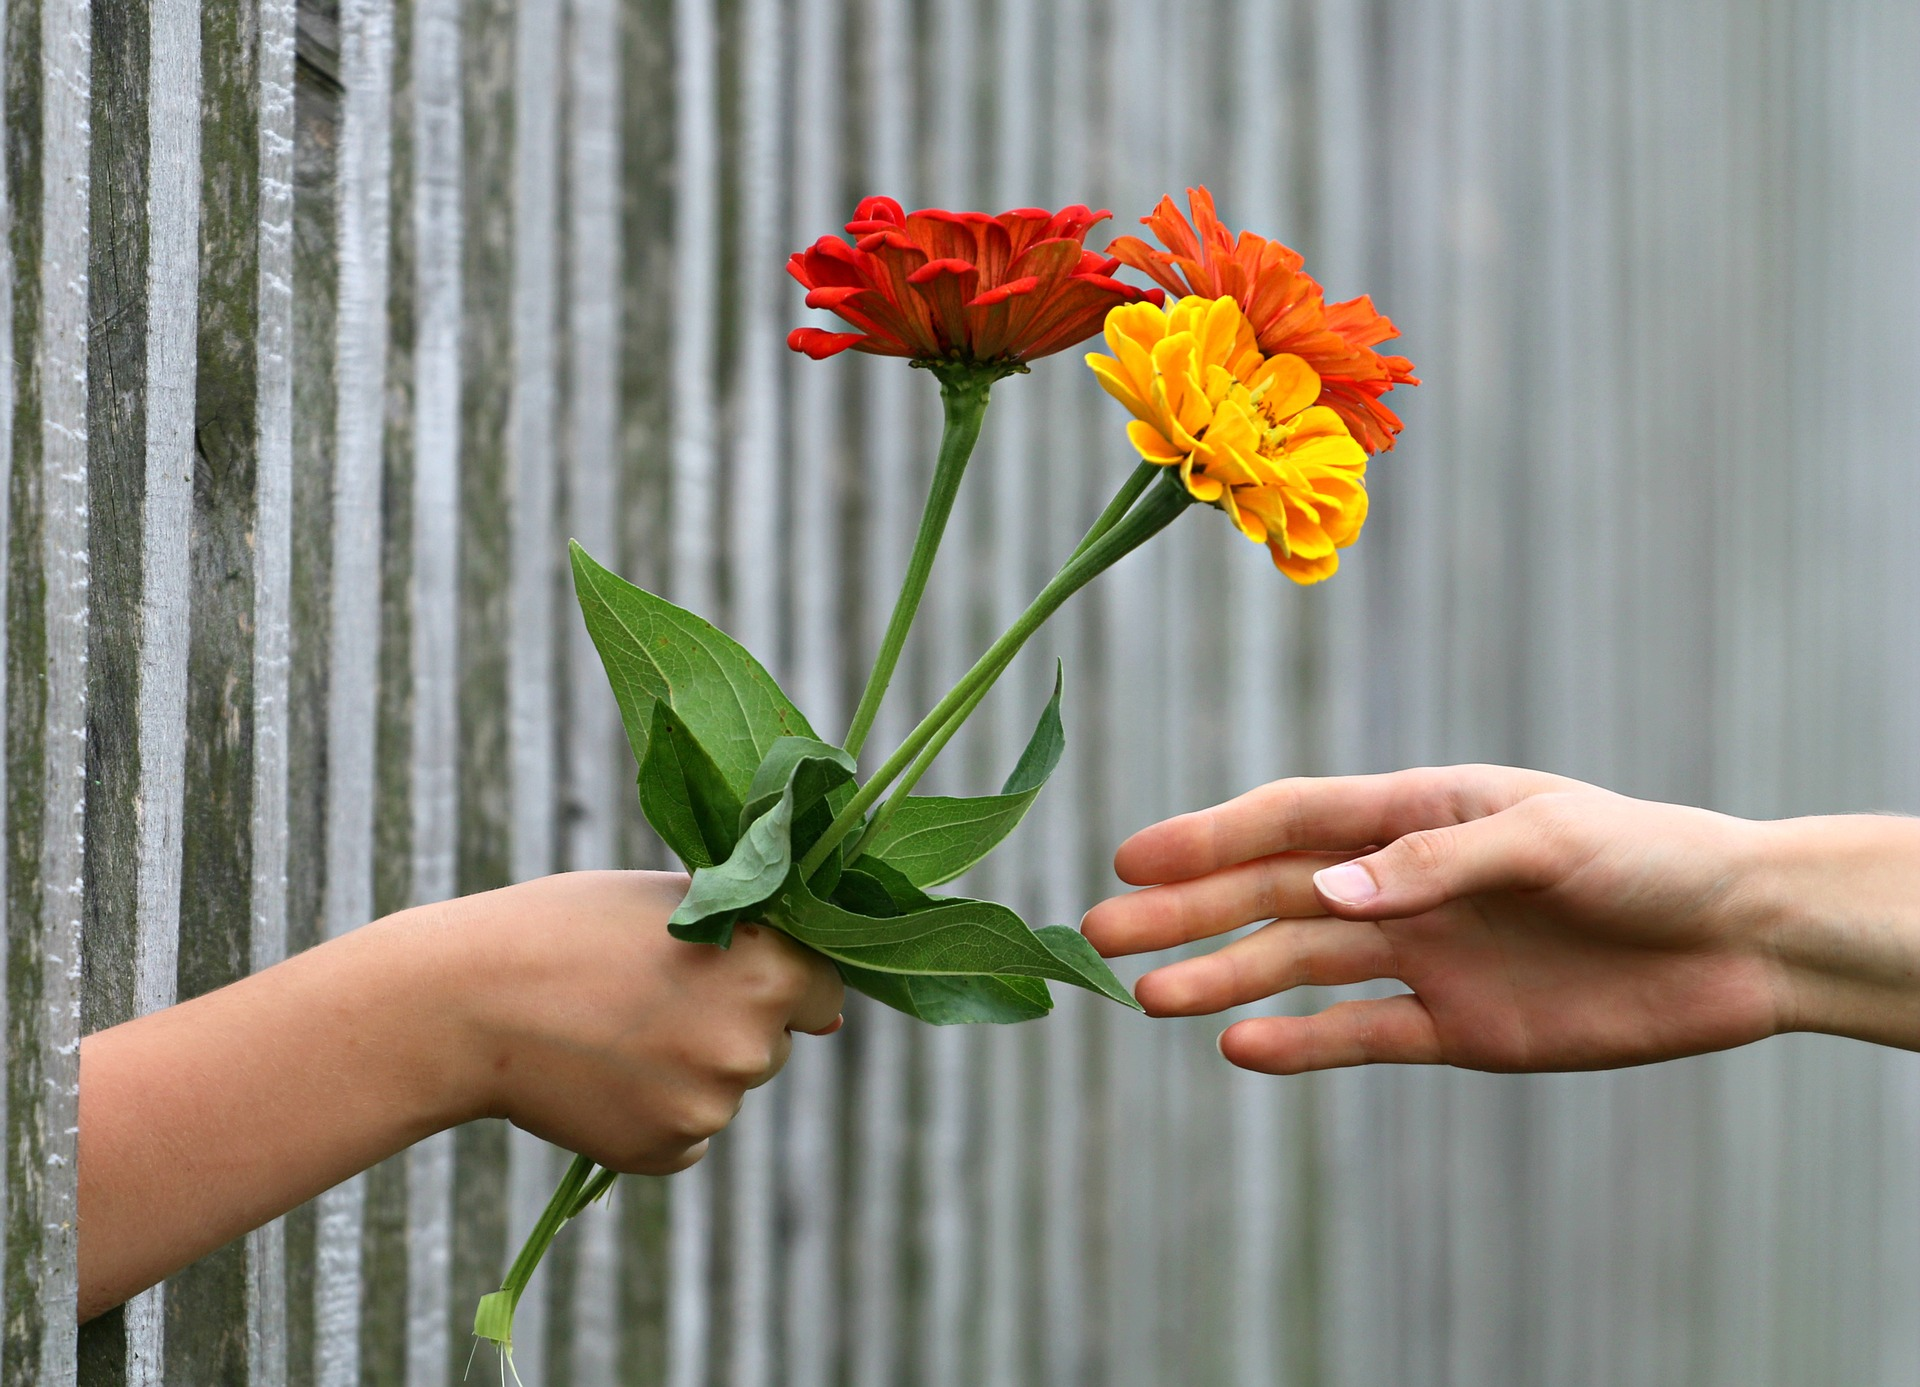 Giving flowers image